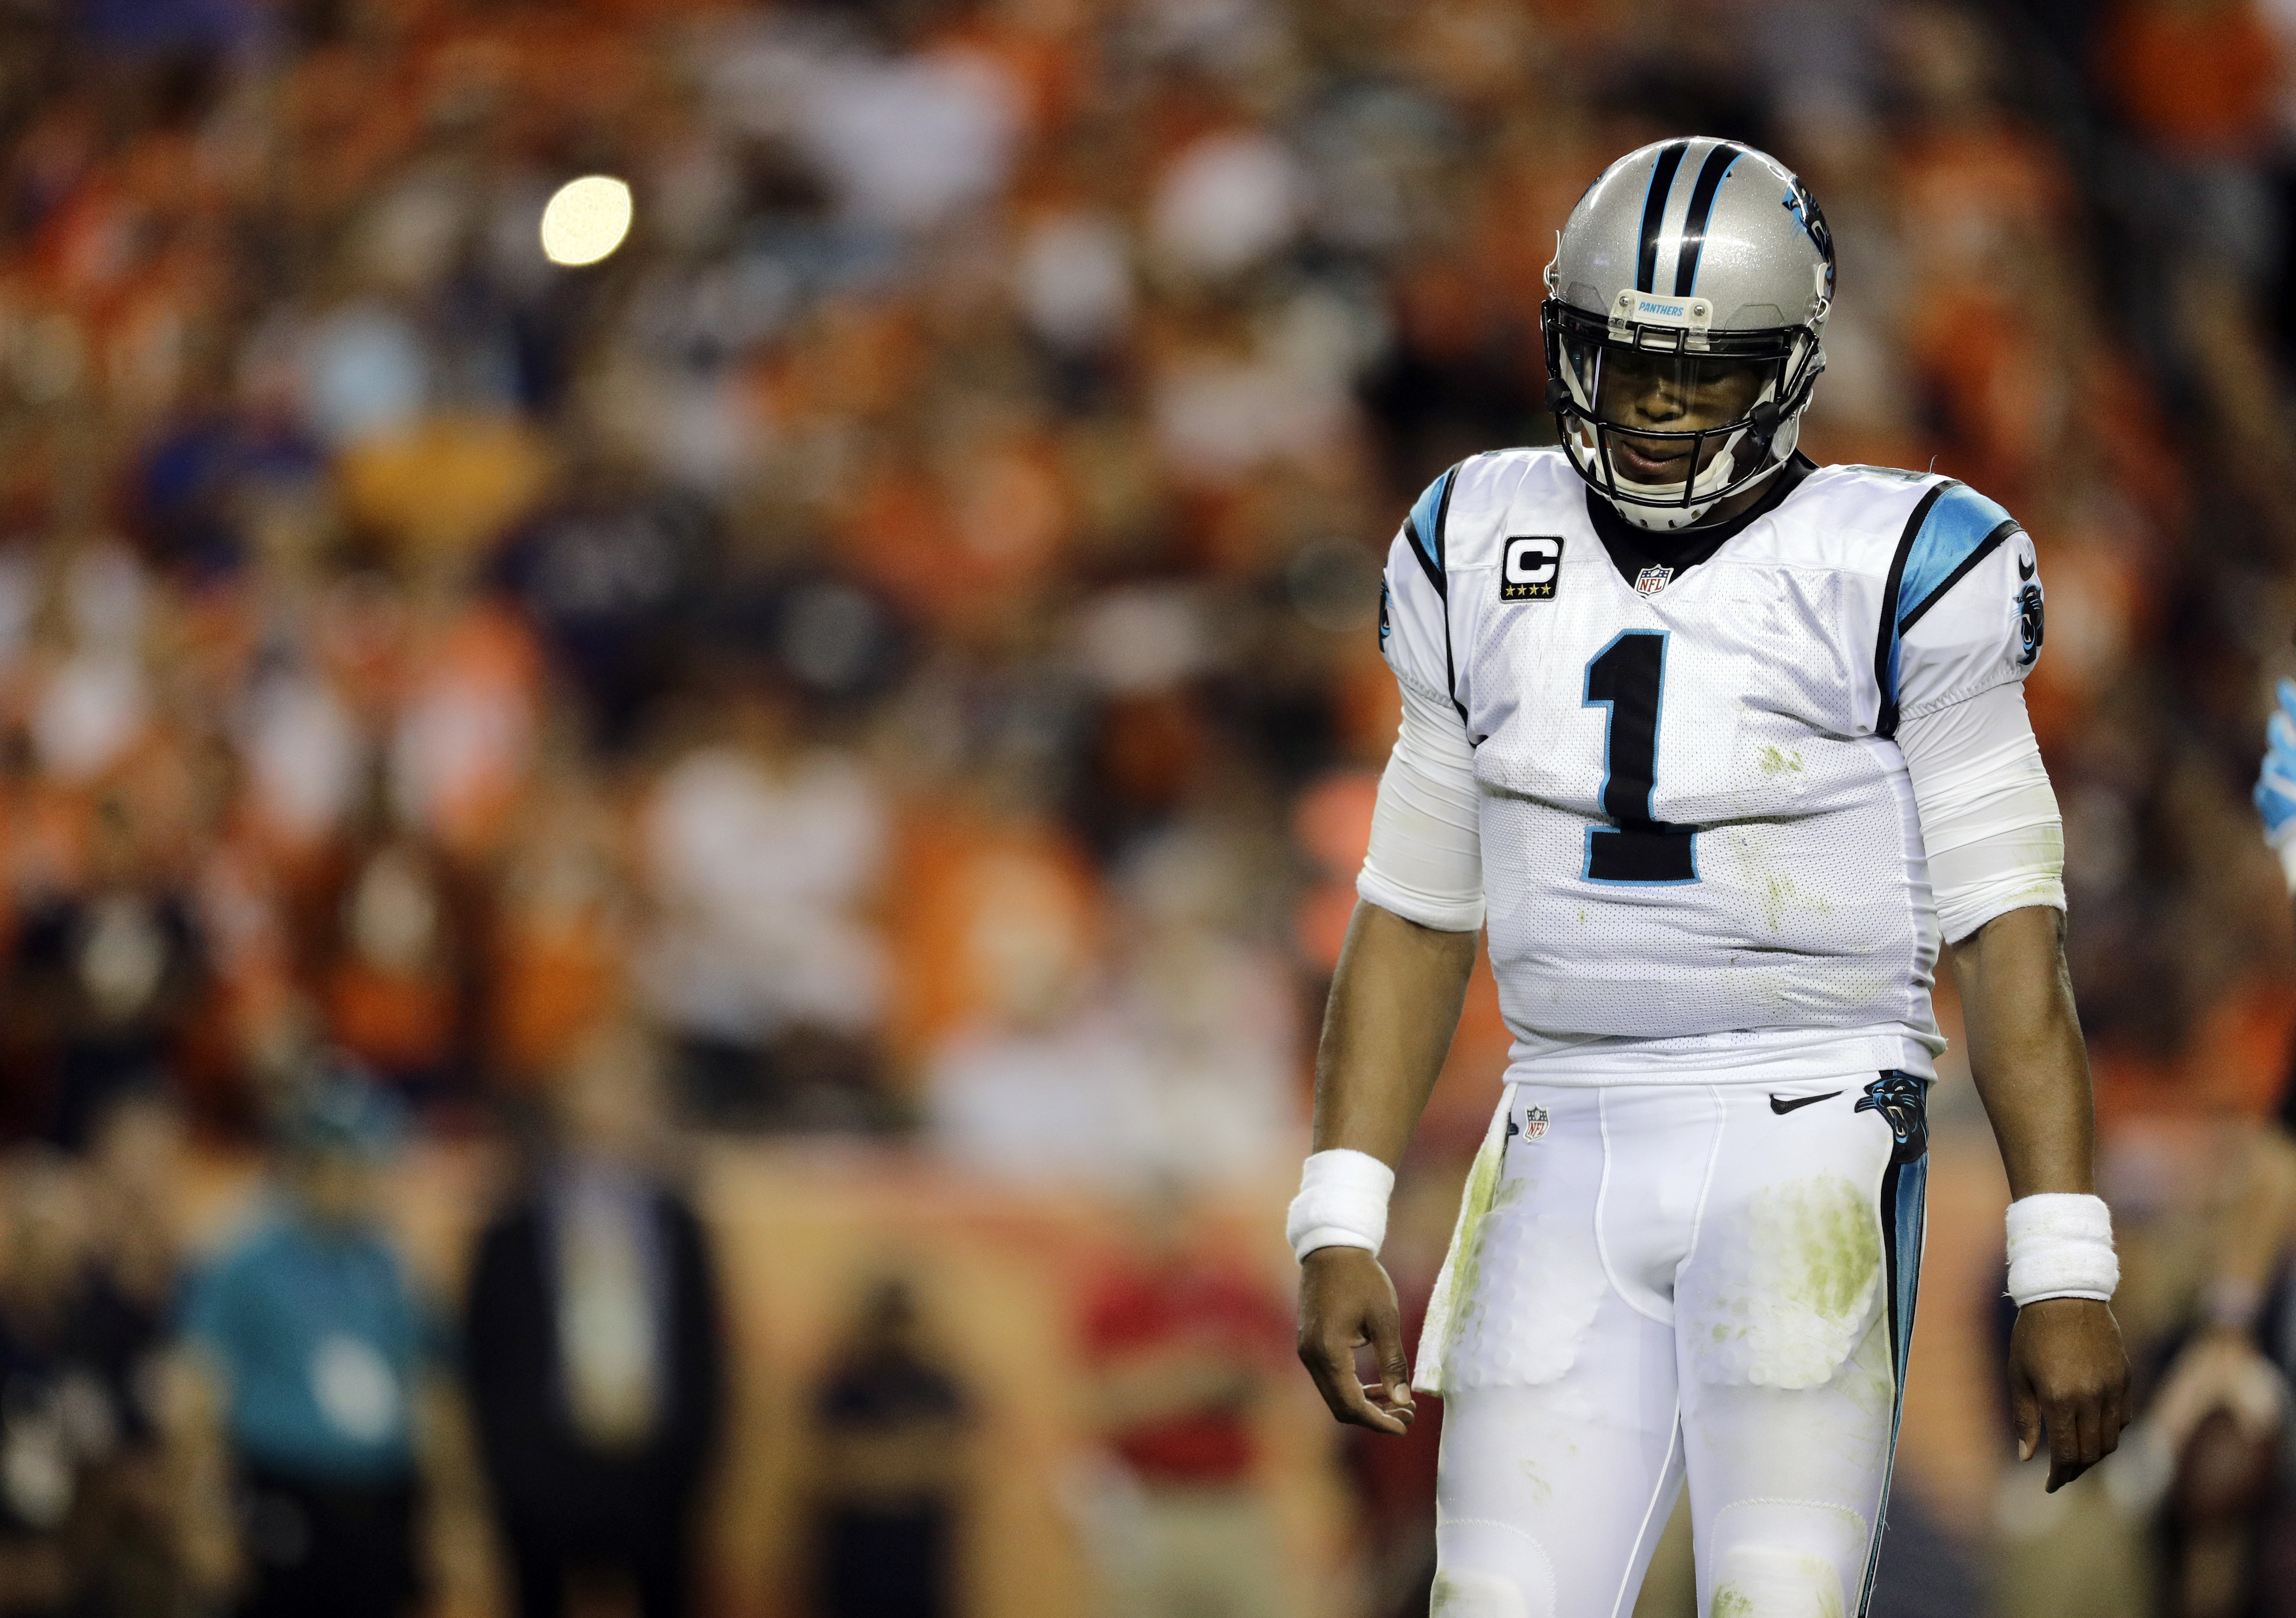 FILE - In this Sept. 8, 2016, file photo, Carolina Panthers quarterback Cam Newton (1) walks to the sidelines during the second half of an NFL football game against the Denver Broncos in Denver. The Panthers are hoping Newton can get back on the field in